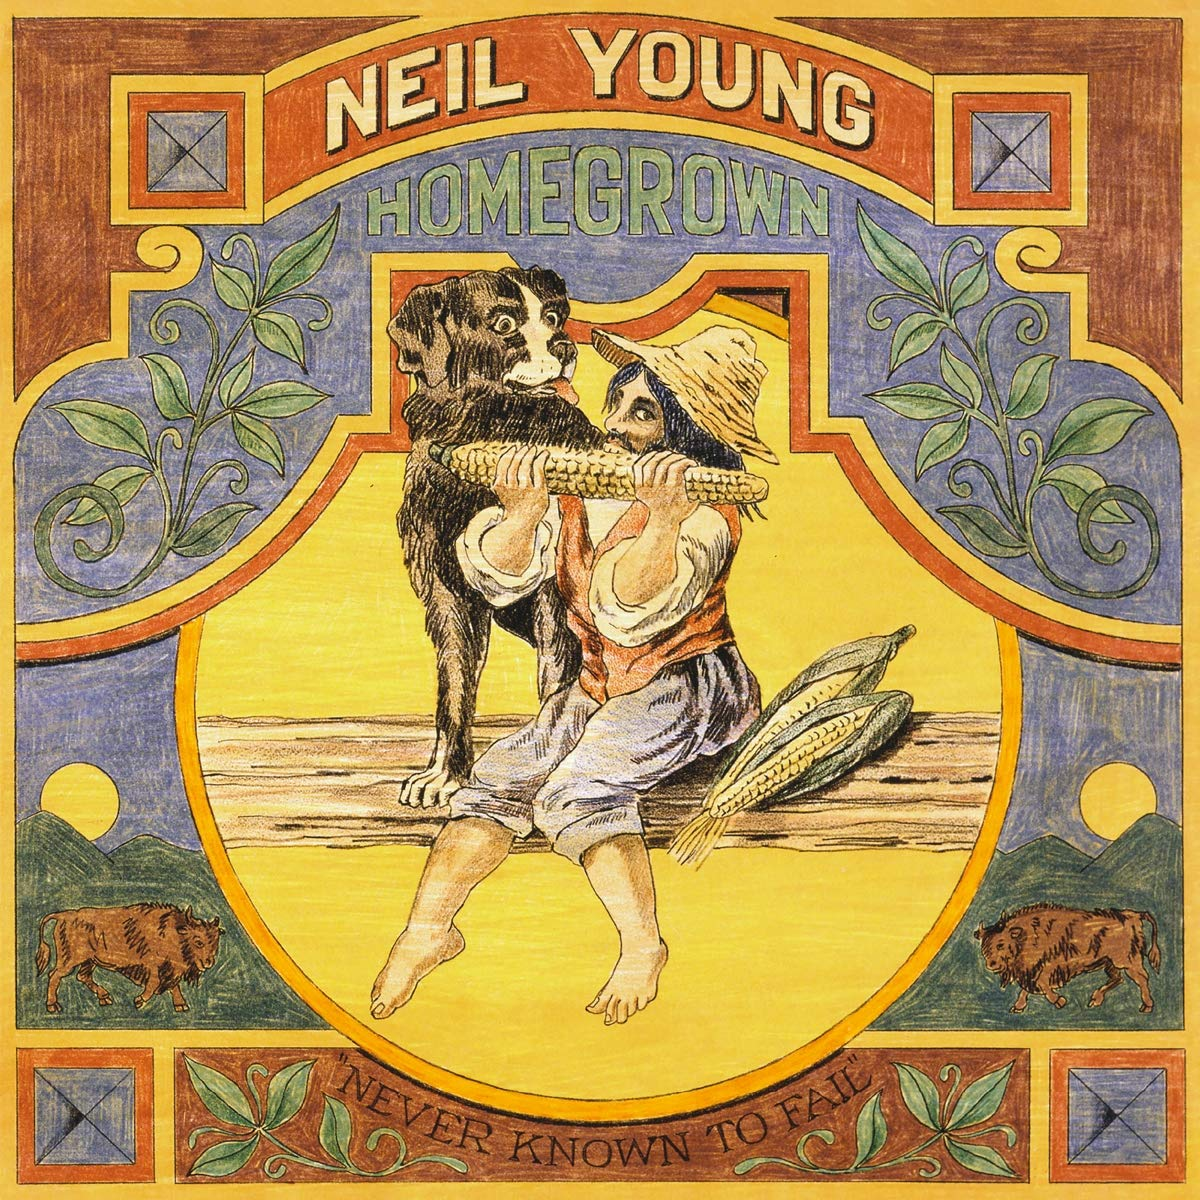 Homegrown by Neil Young